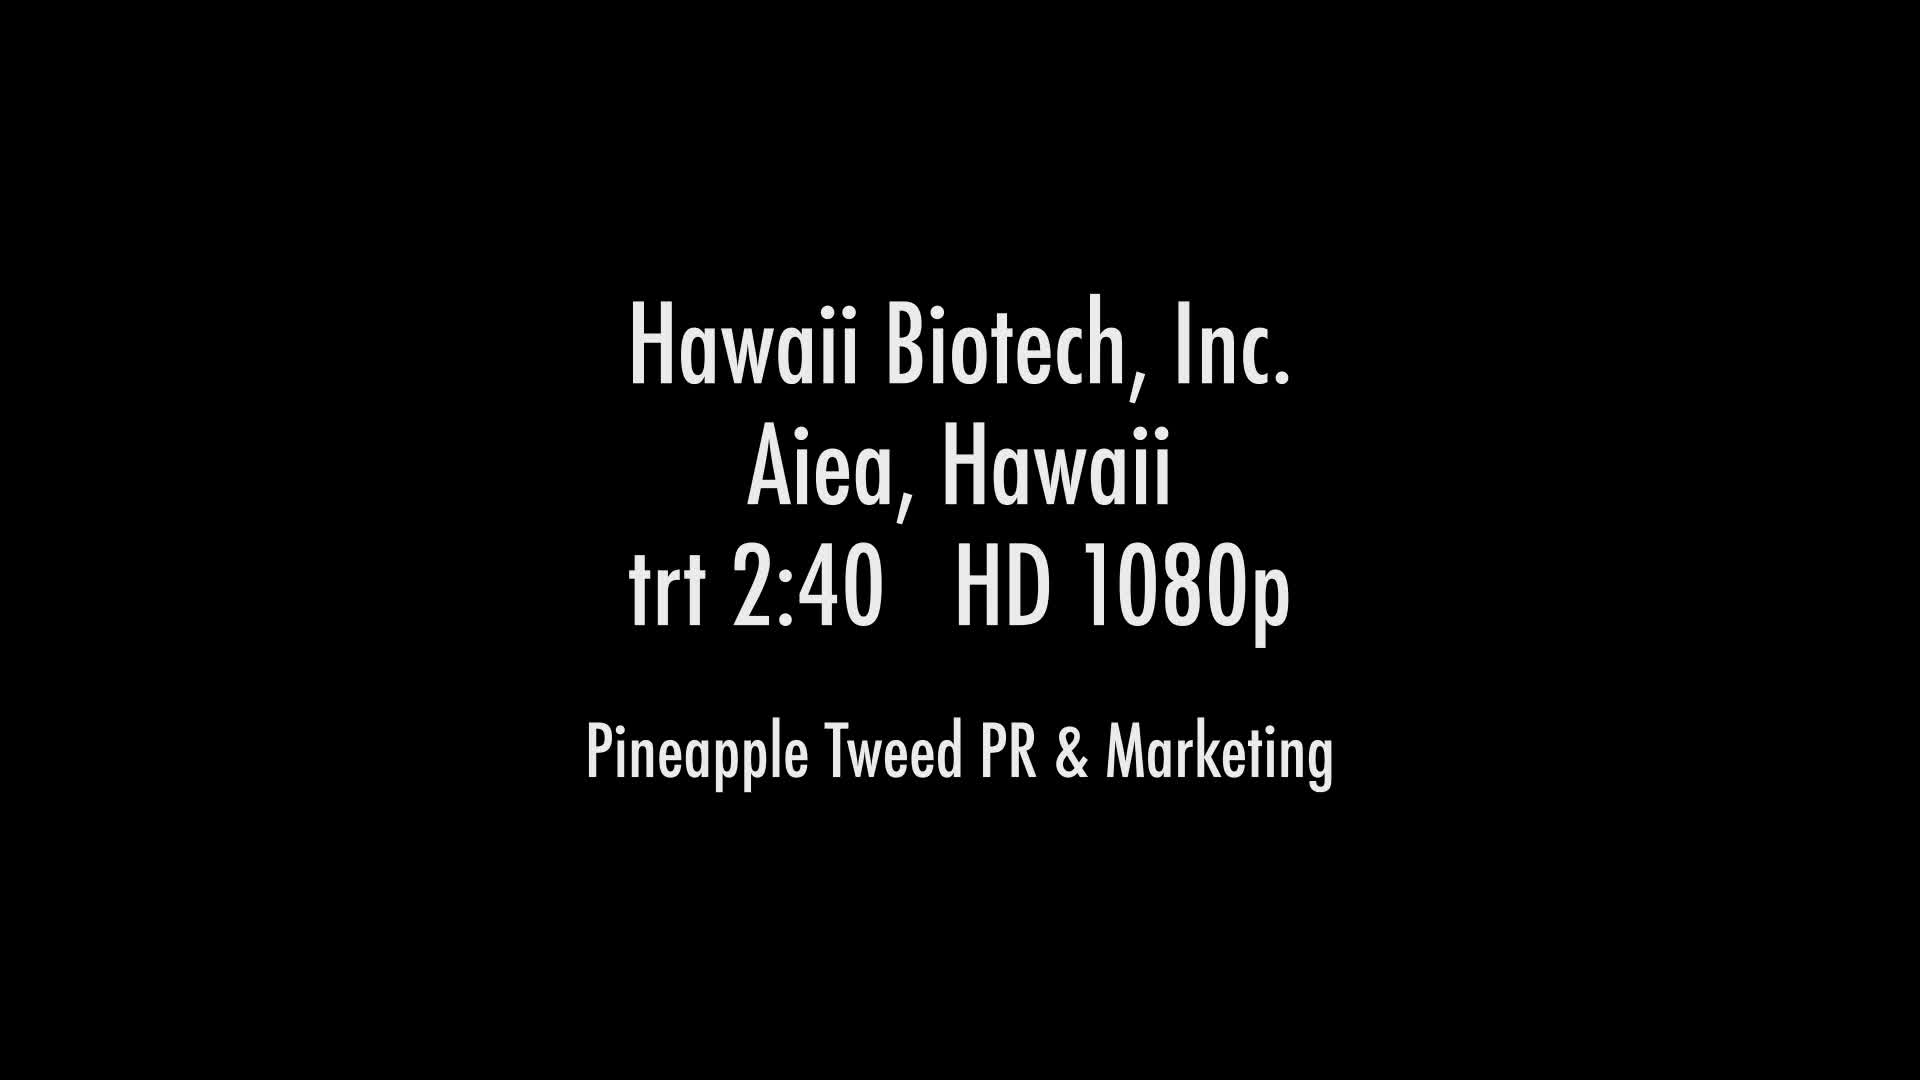 Hawaii Biotech Adds Drug Discovery To Vaccine Development